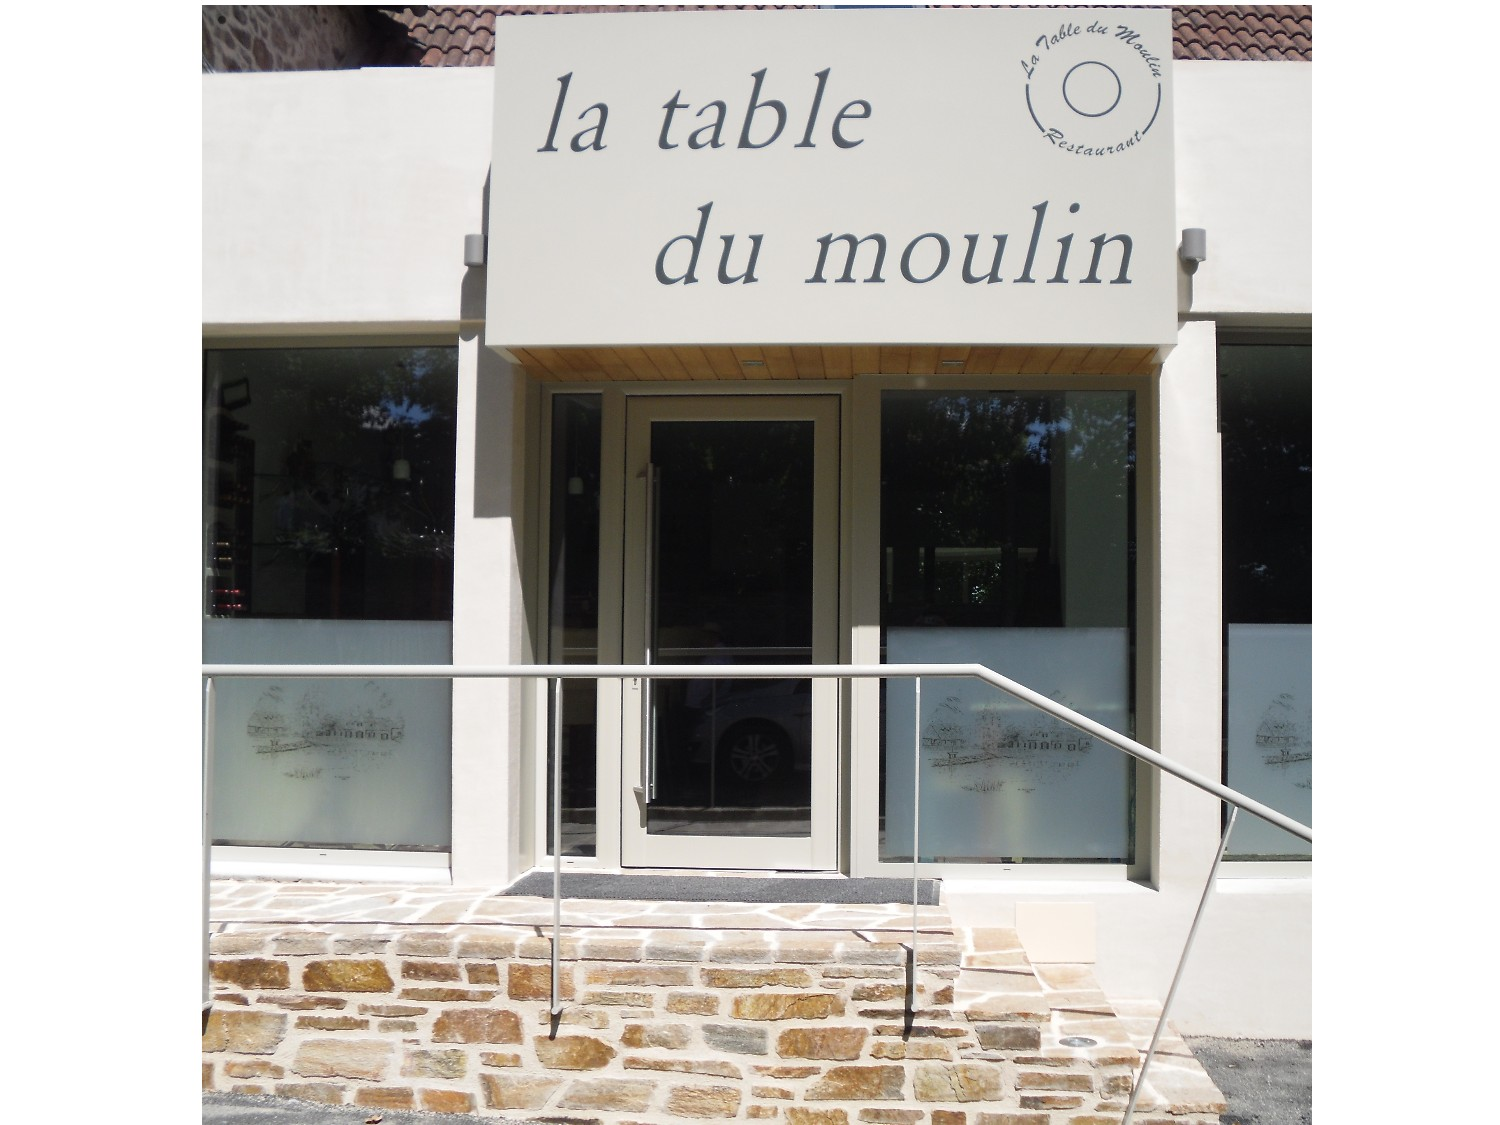 La table du moulin restaurant de pierre bertranet for La table du 6 laille